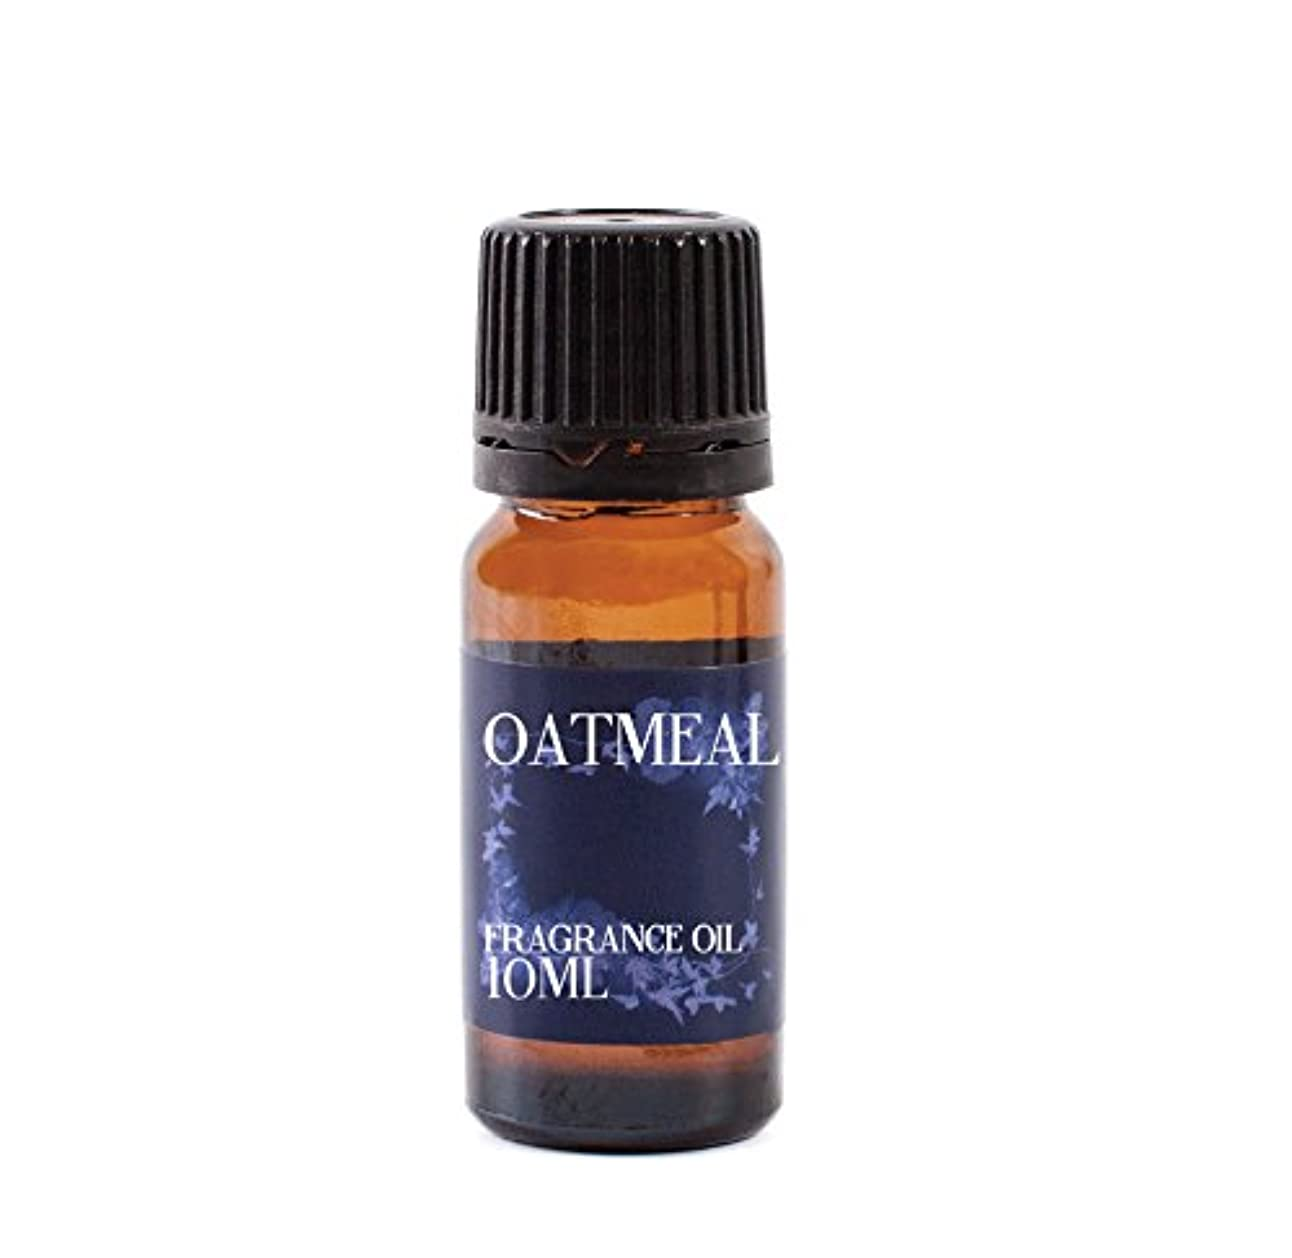 優雅バイパス耐えられないMystic Moments | Oatmeal Fragrance Oil - 10ml